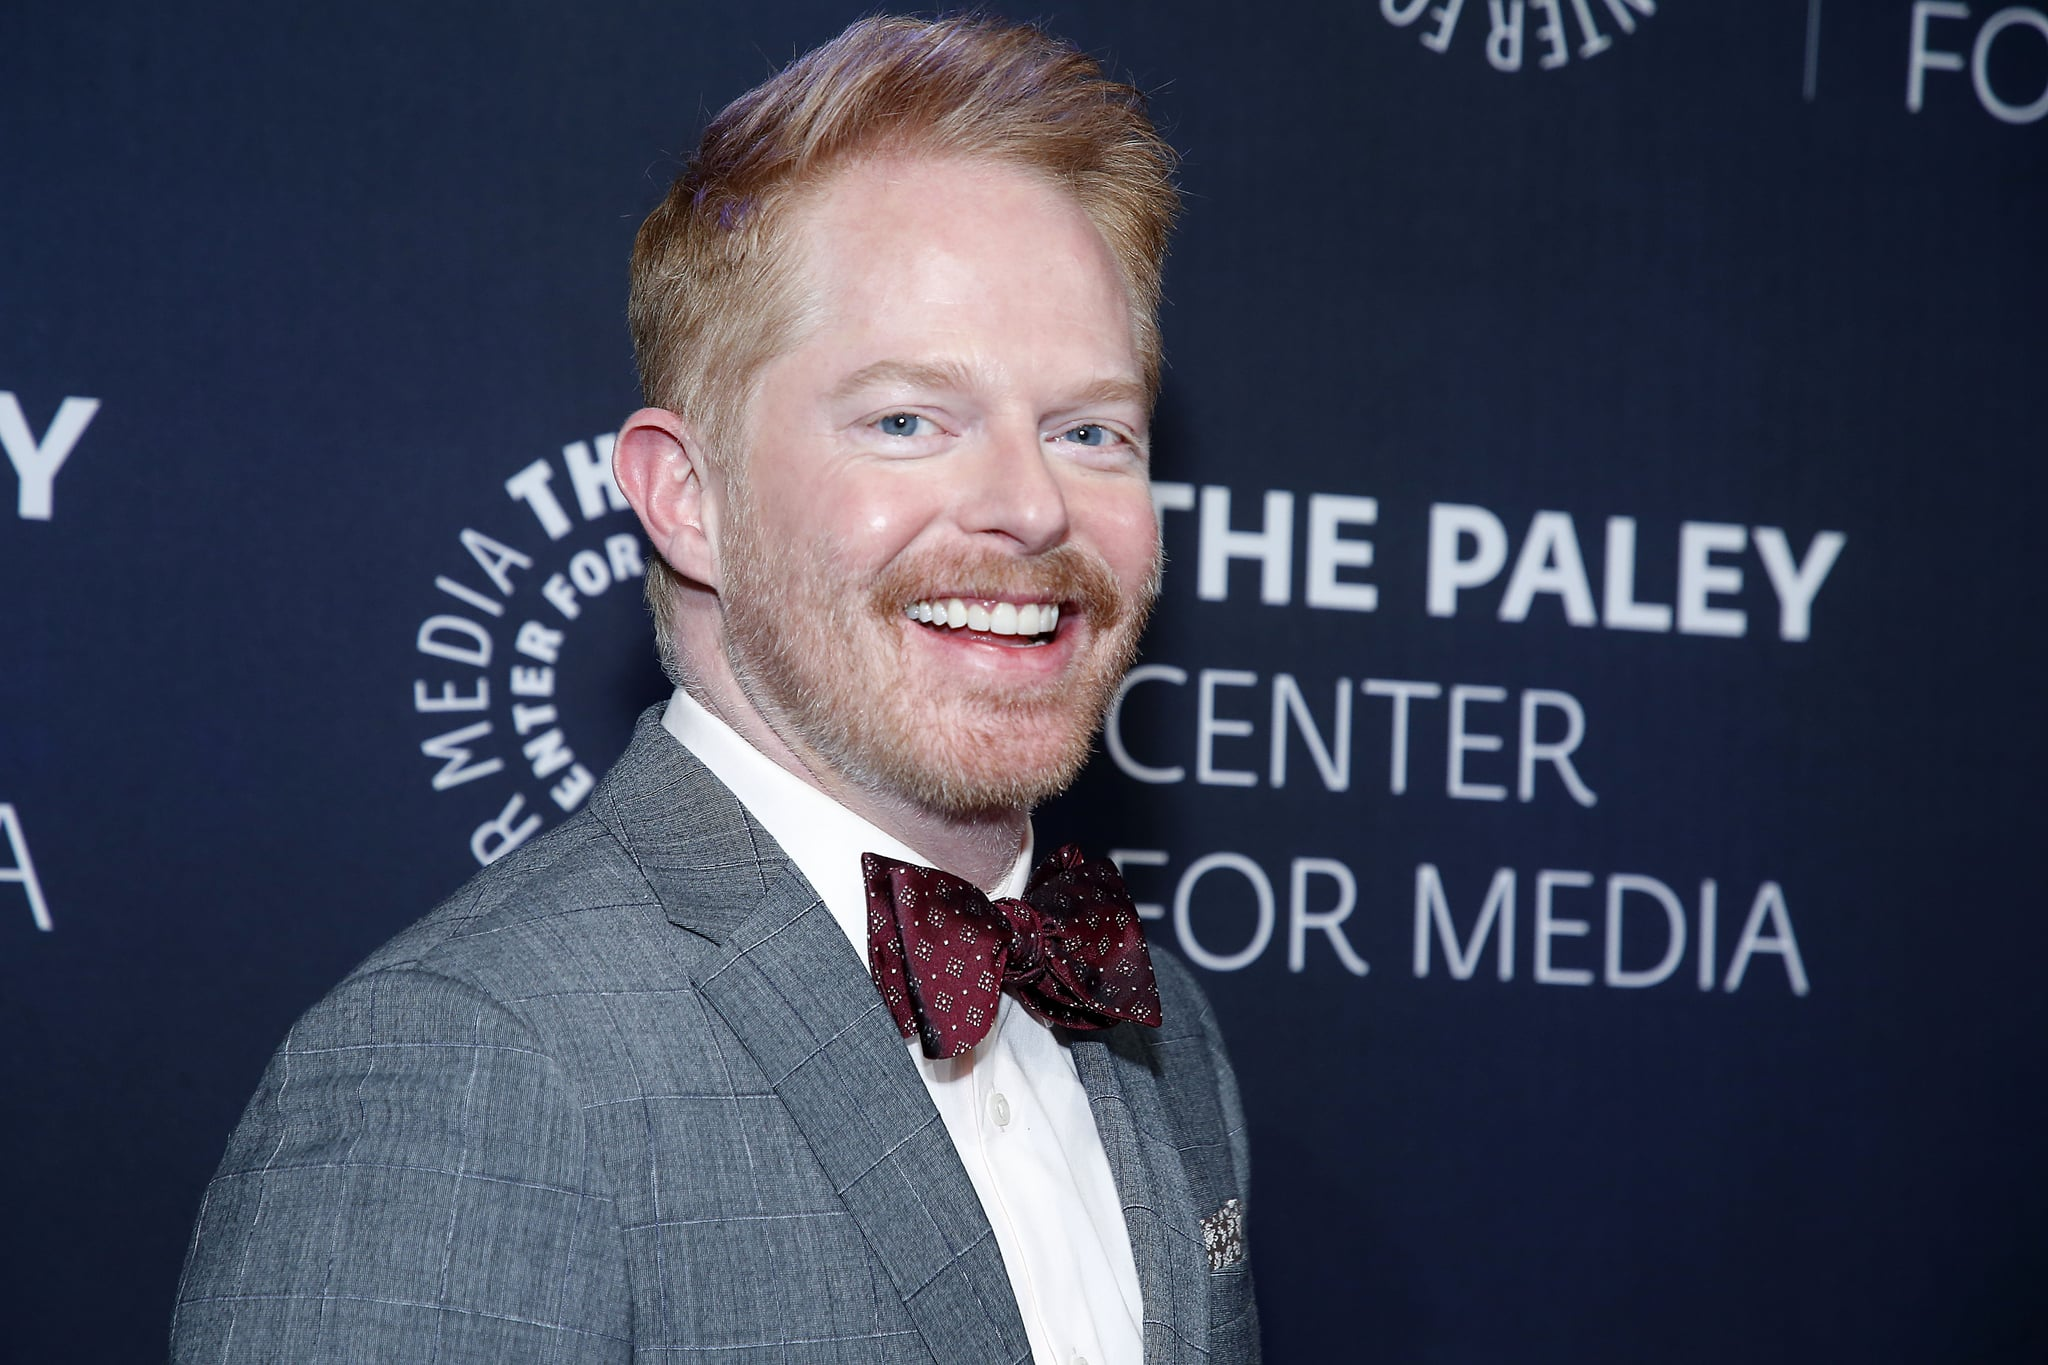 NEW YORK, NEW YORK - MAY 15: Jesse Tyler Ferguson attends The Paley Honors: A Gala Tribute To LGBTQ at The Ziegfeld Ballroom on May 15, 2019 in New York City. (Photo by John Lamparski/Getty Images)